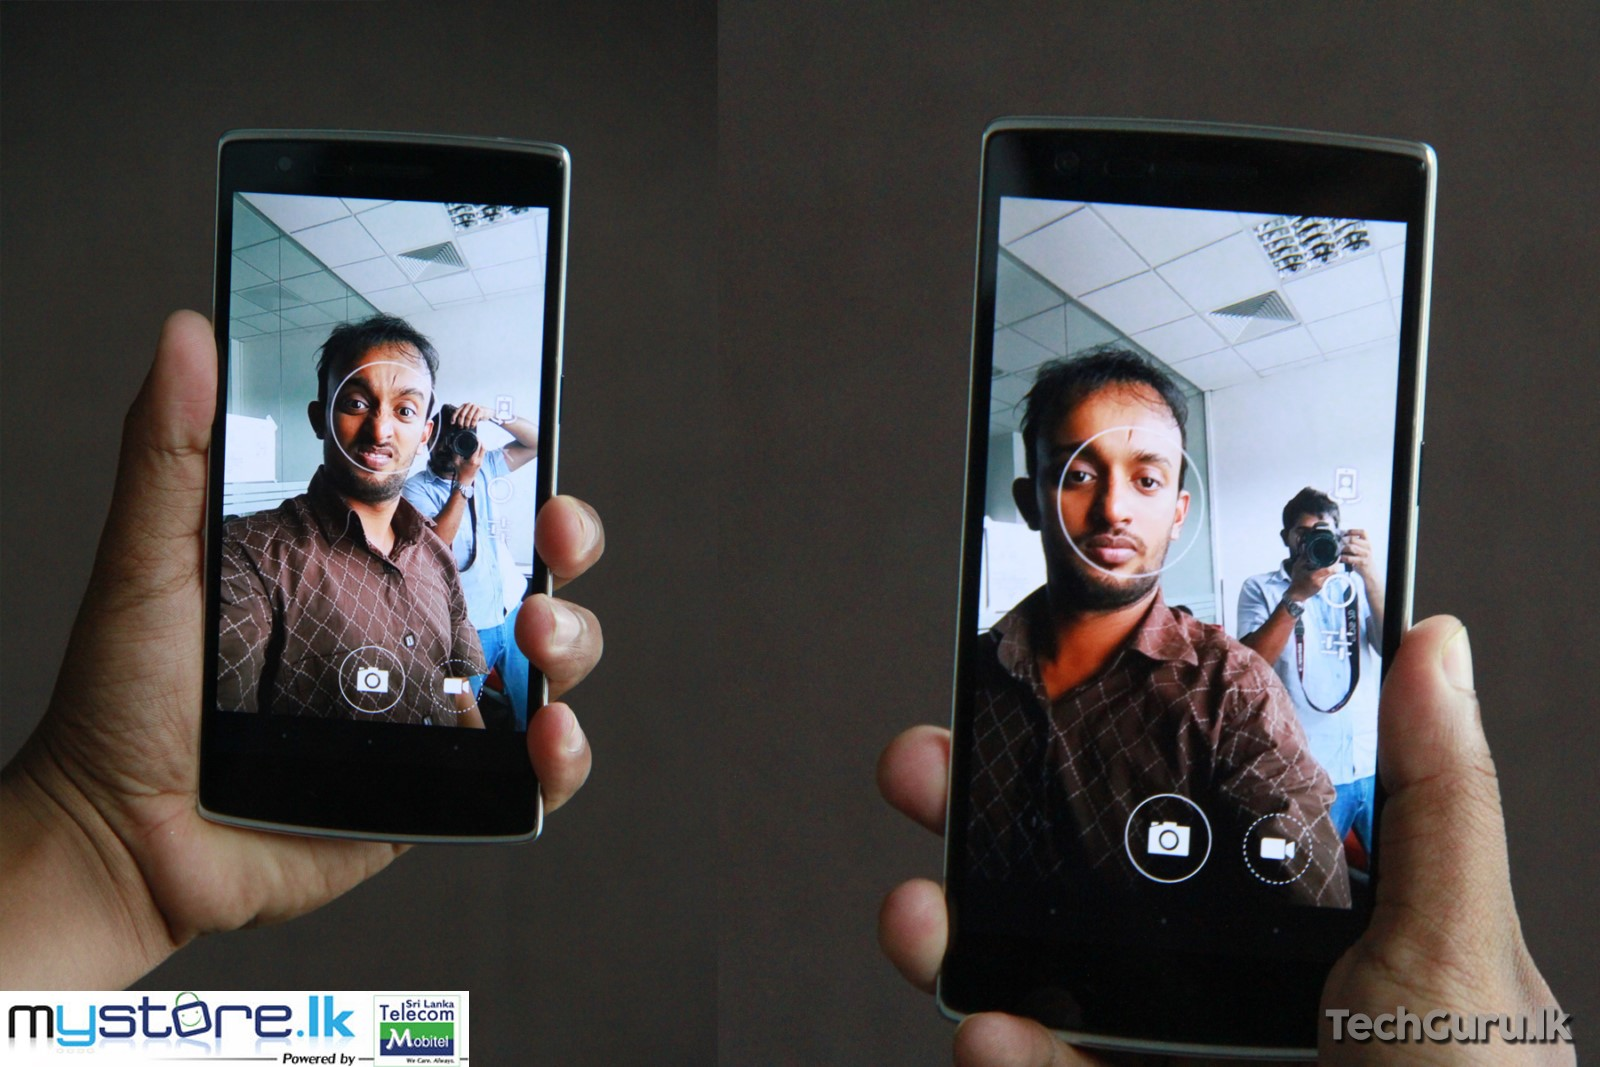 oneplus-one-review-sinhala-techguru-8